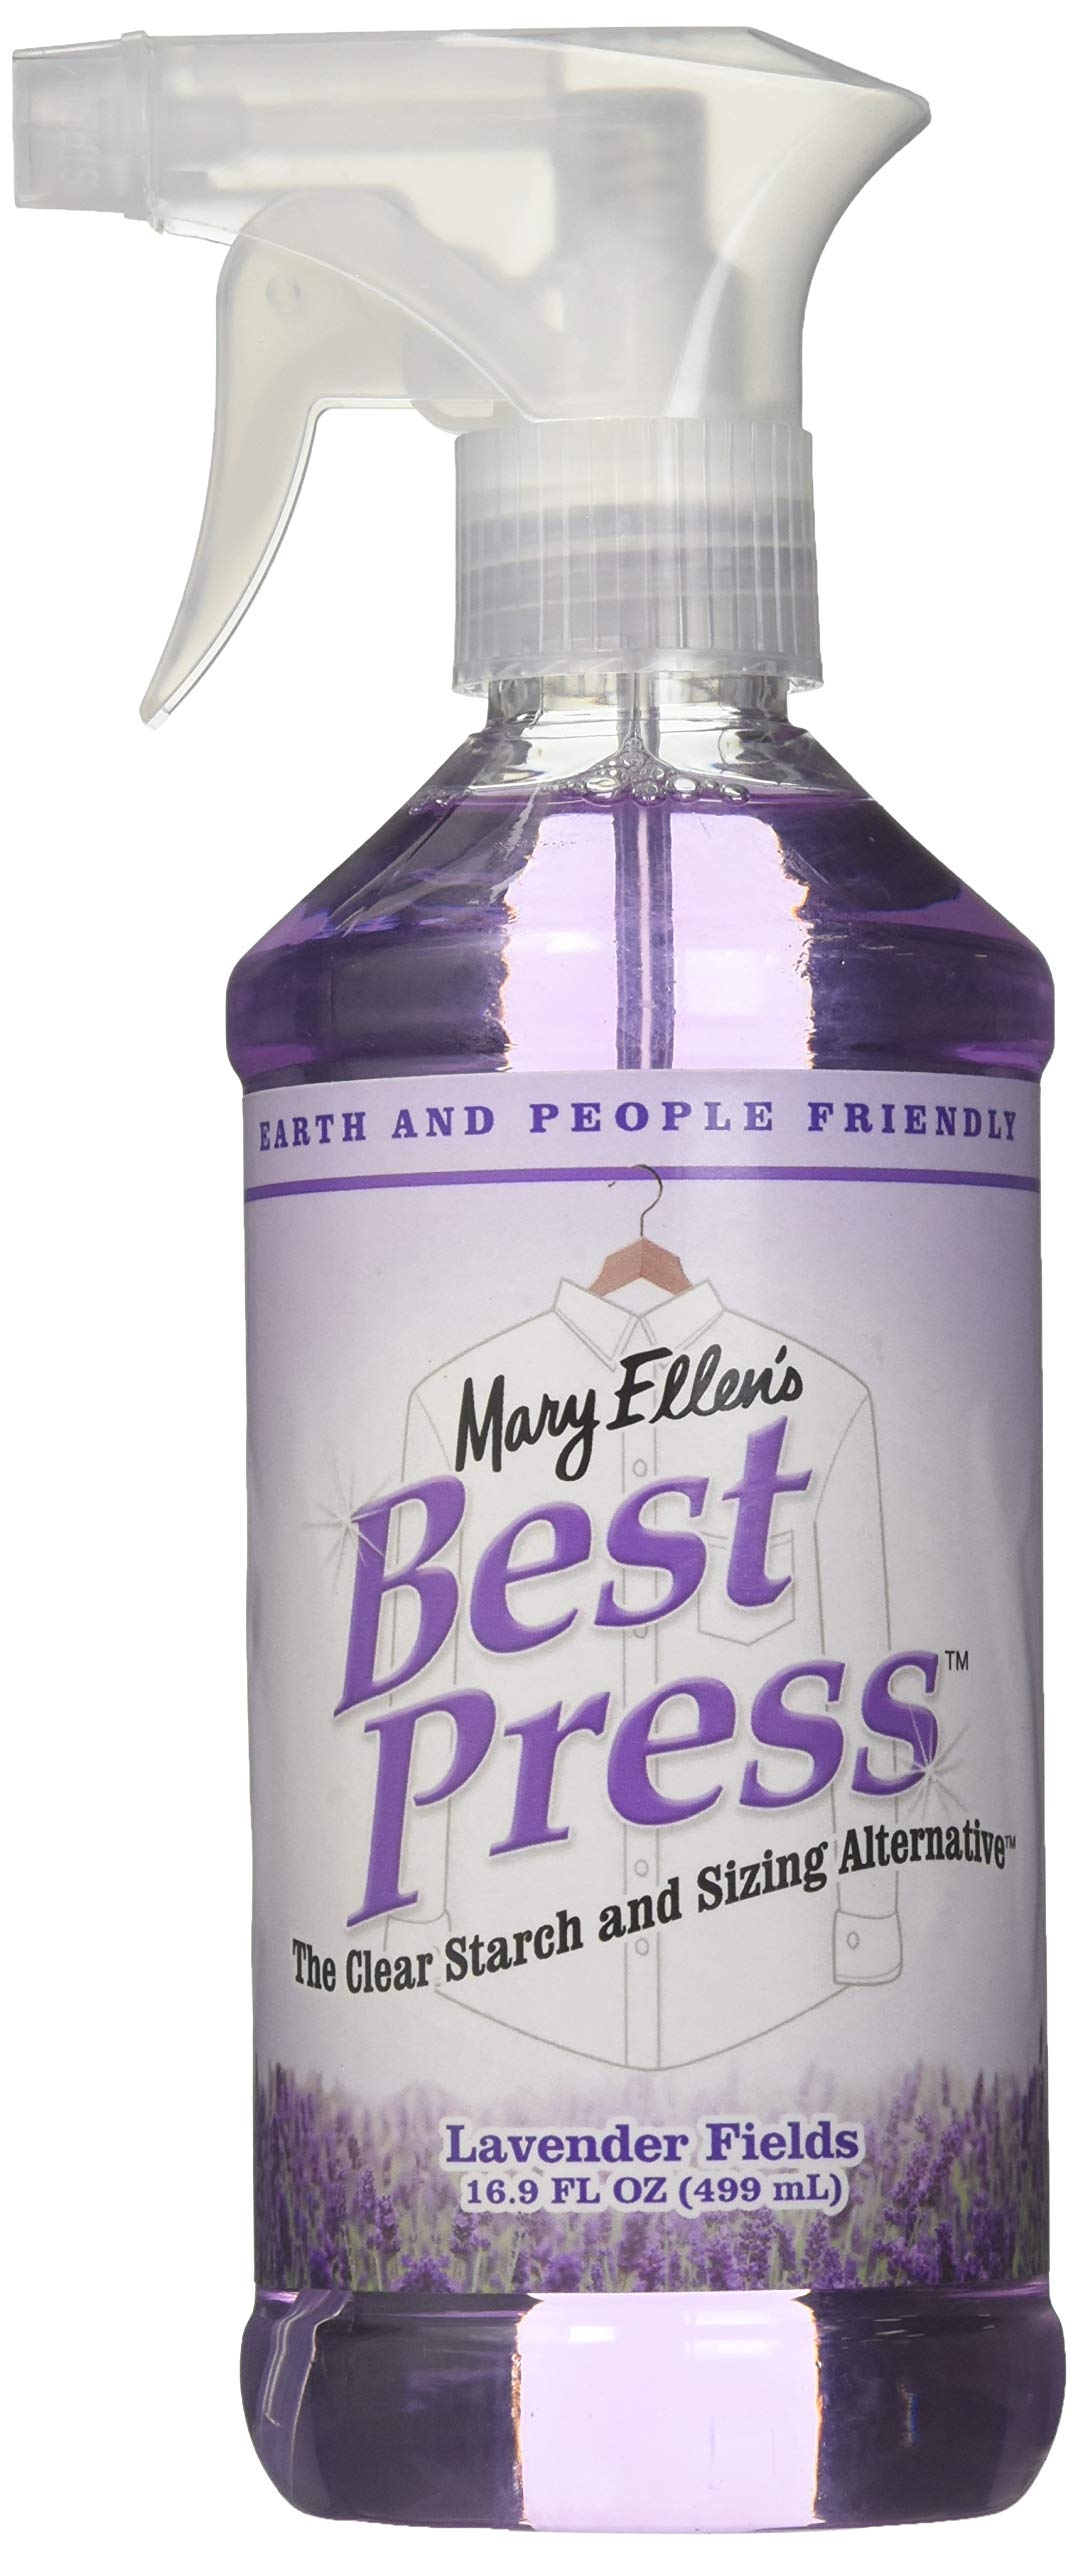 Mary Ellen Products Alt 16 Oz Starch Alternative, Lavender Fields by Mary Ellen Products